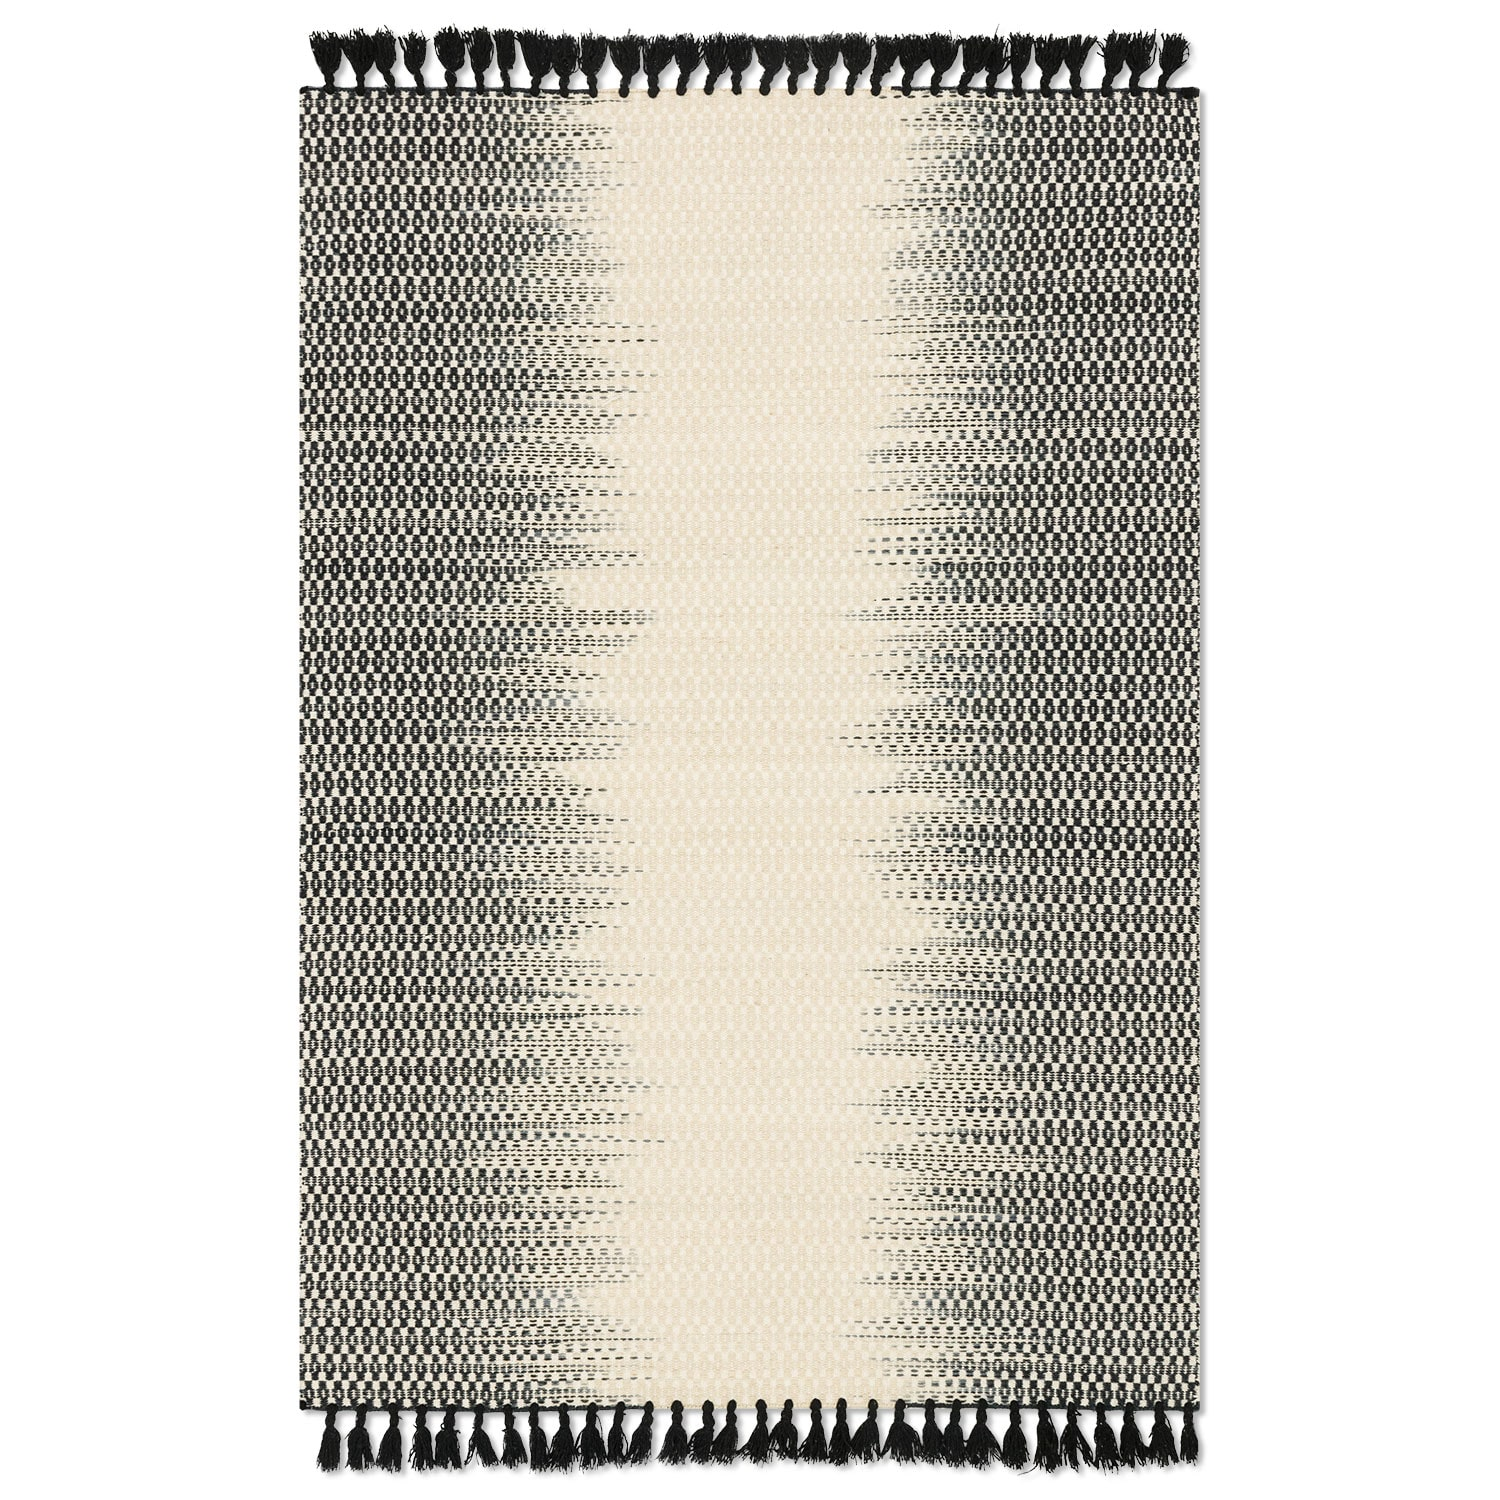 Rugs - Chantilly 5' x 8' Rug - Ivory and Black